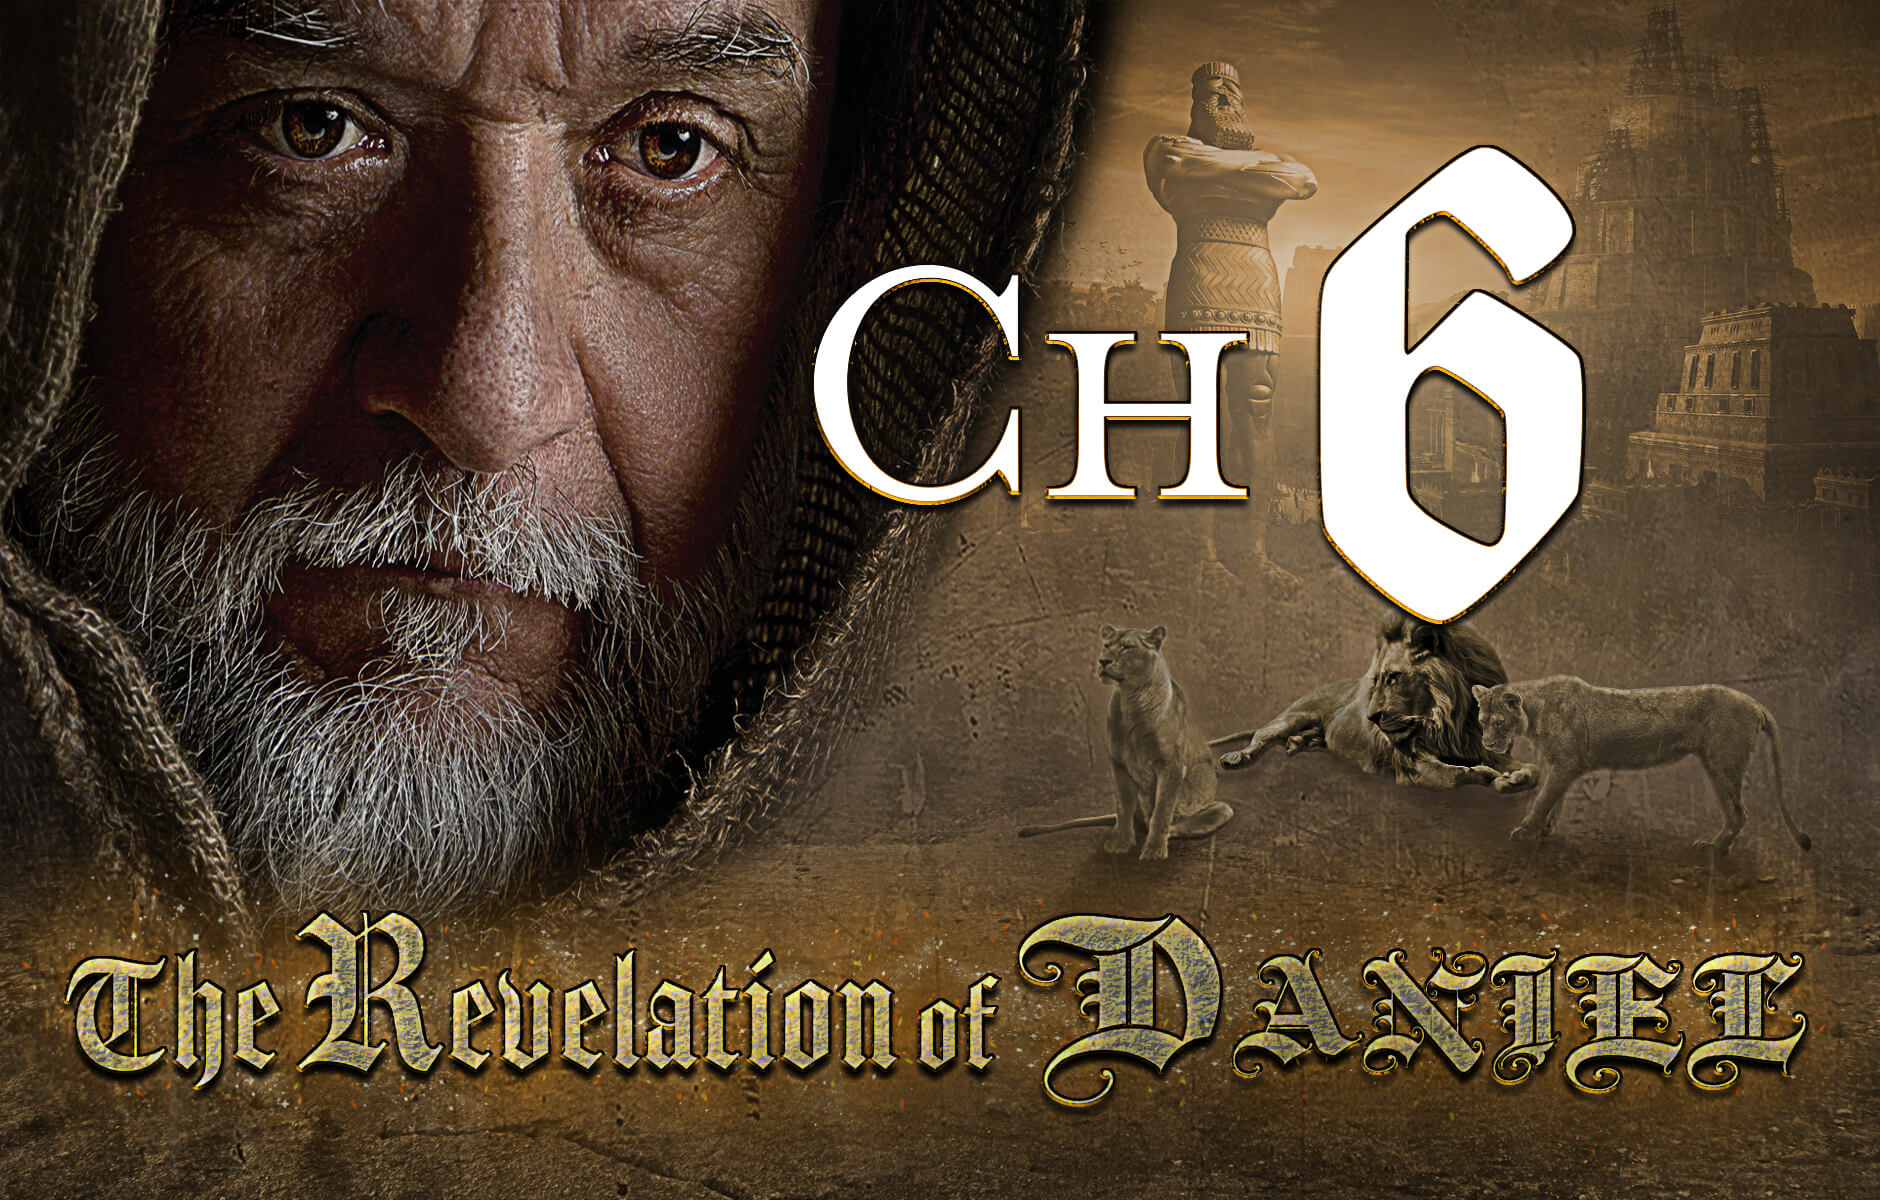 The Revelation of Daniel Chapter 6